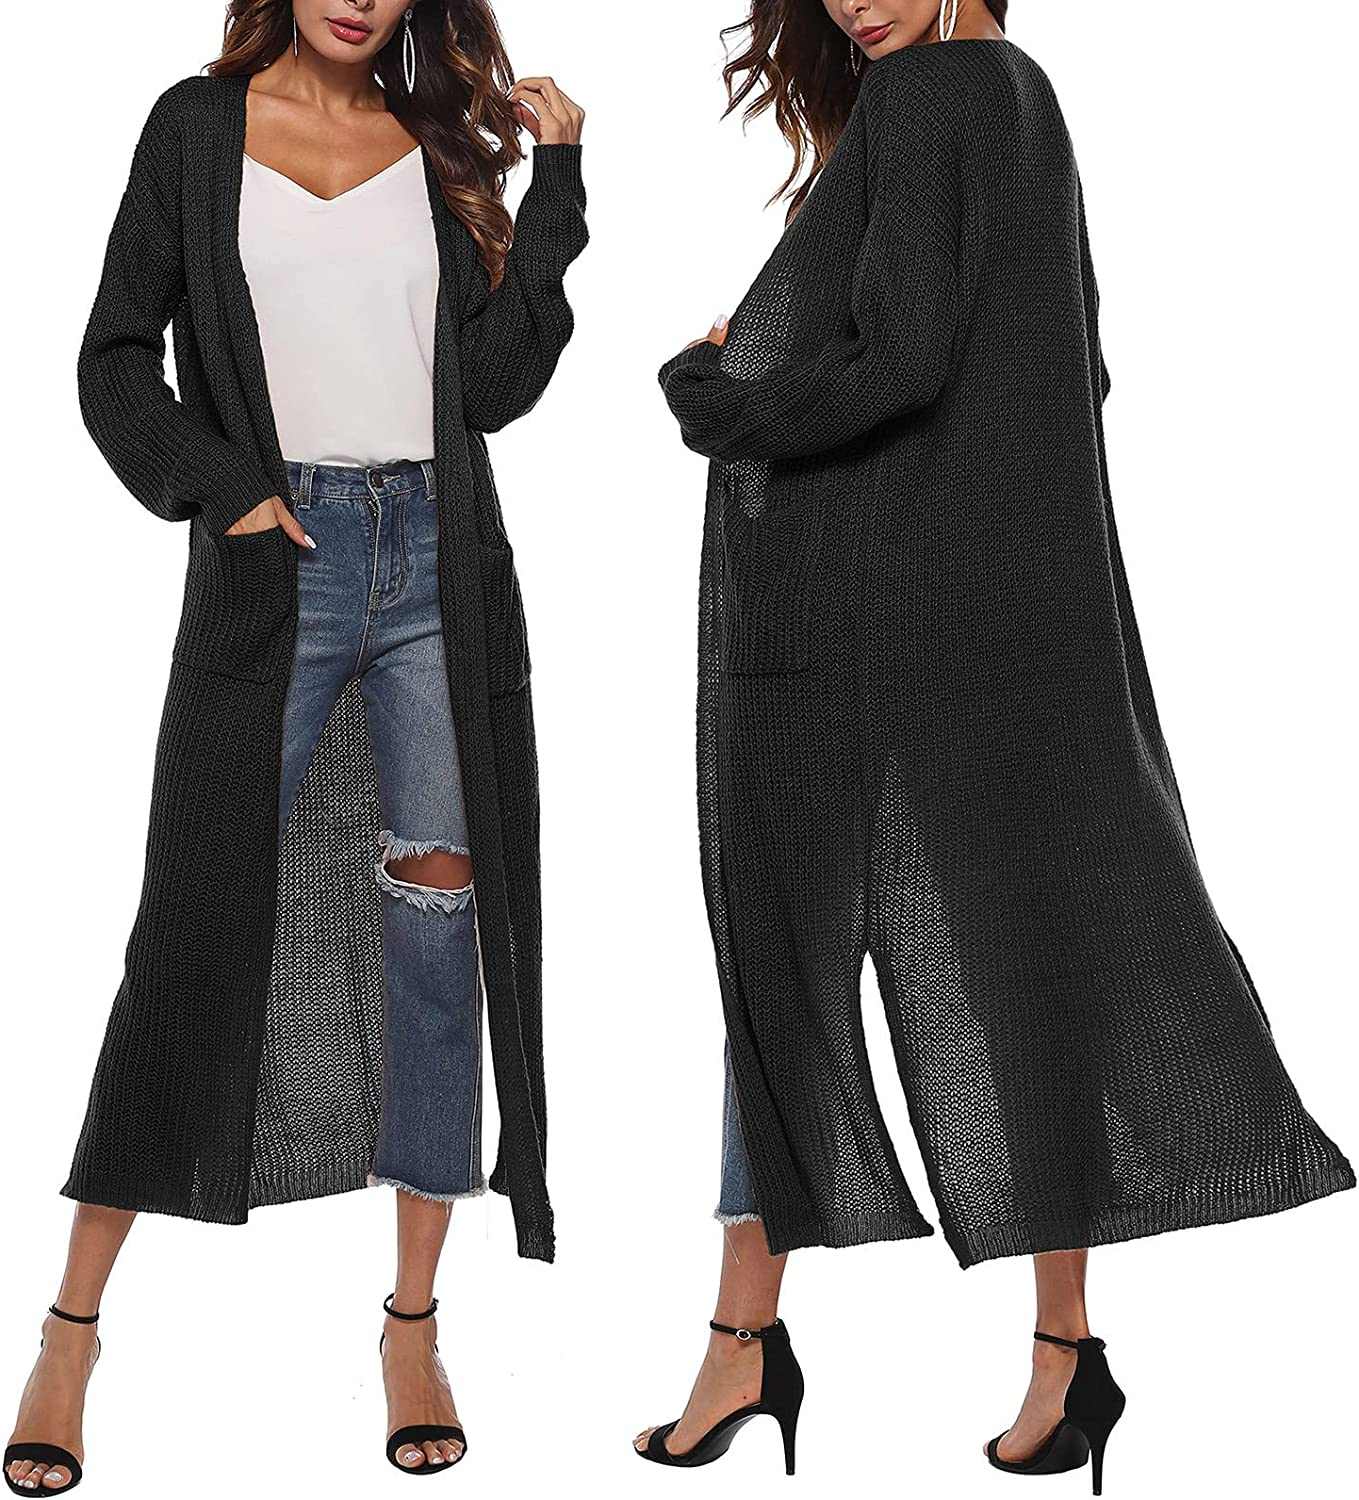 Long Kimono Cardigan Lightweight Women Y2k See Through Long Sleeve Open Front 2 Pocket Draped Sweaters with Slit